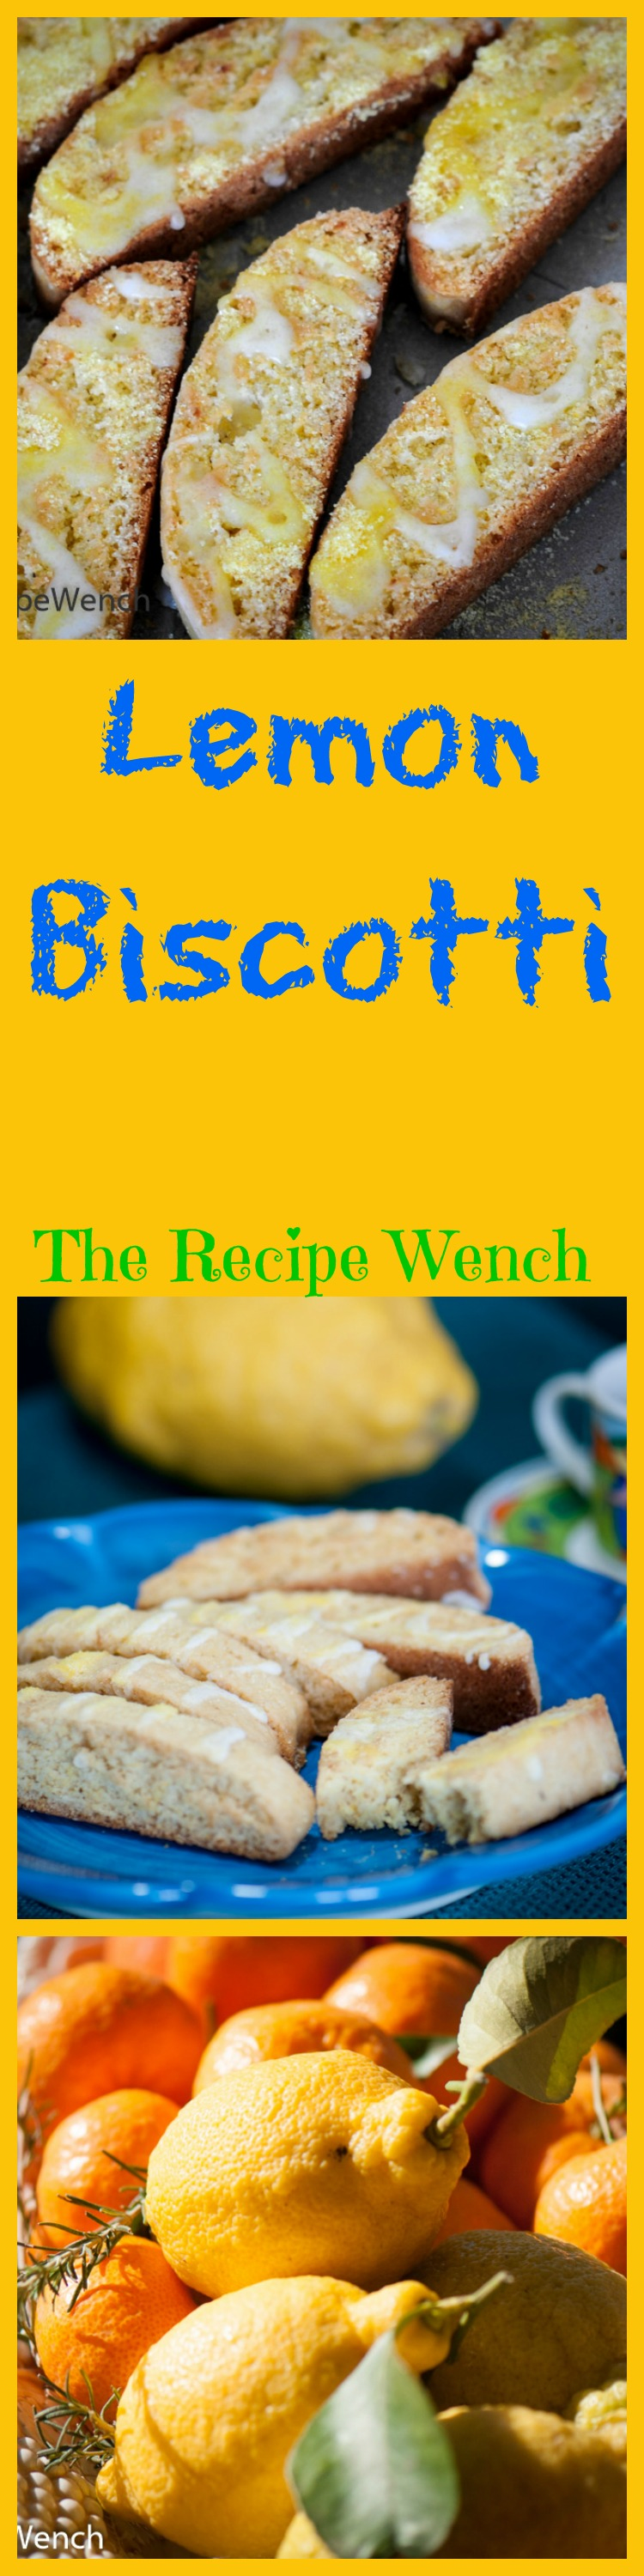 The Recipe Wench